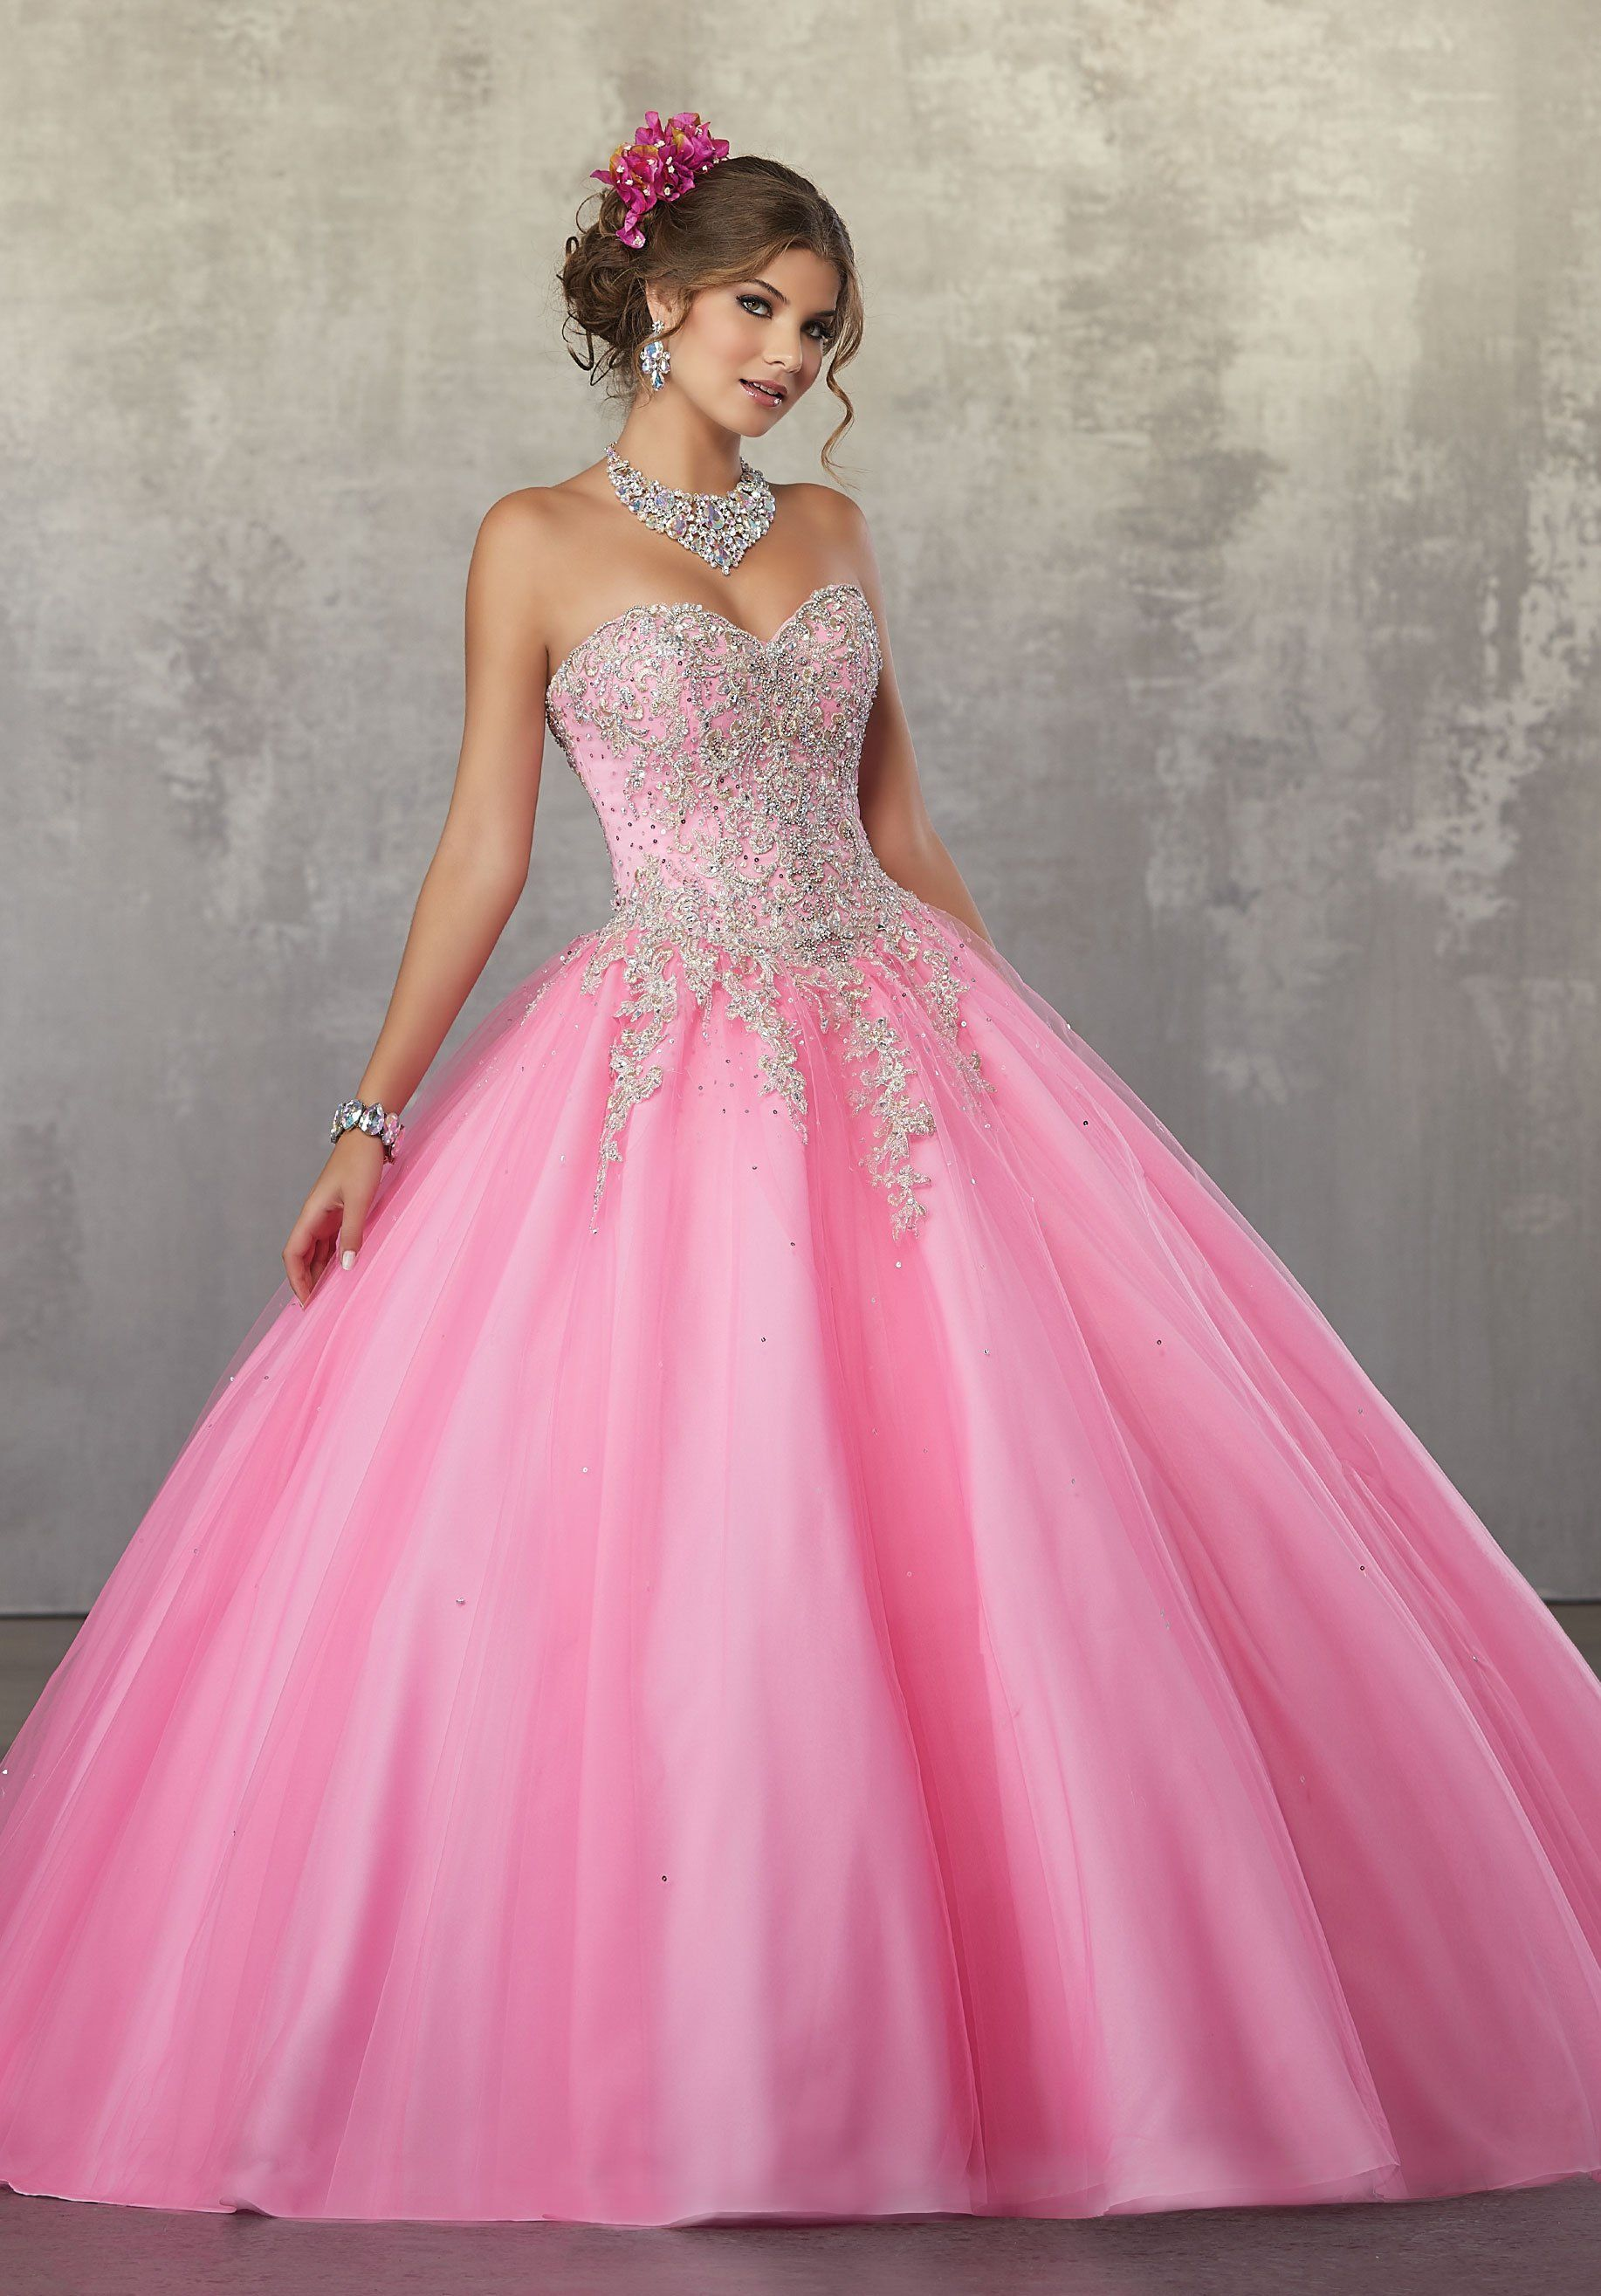 Strapless A-Line Quinceanera Dress by Mori Lee Valencia 60035 ...